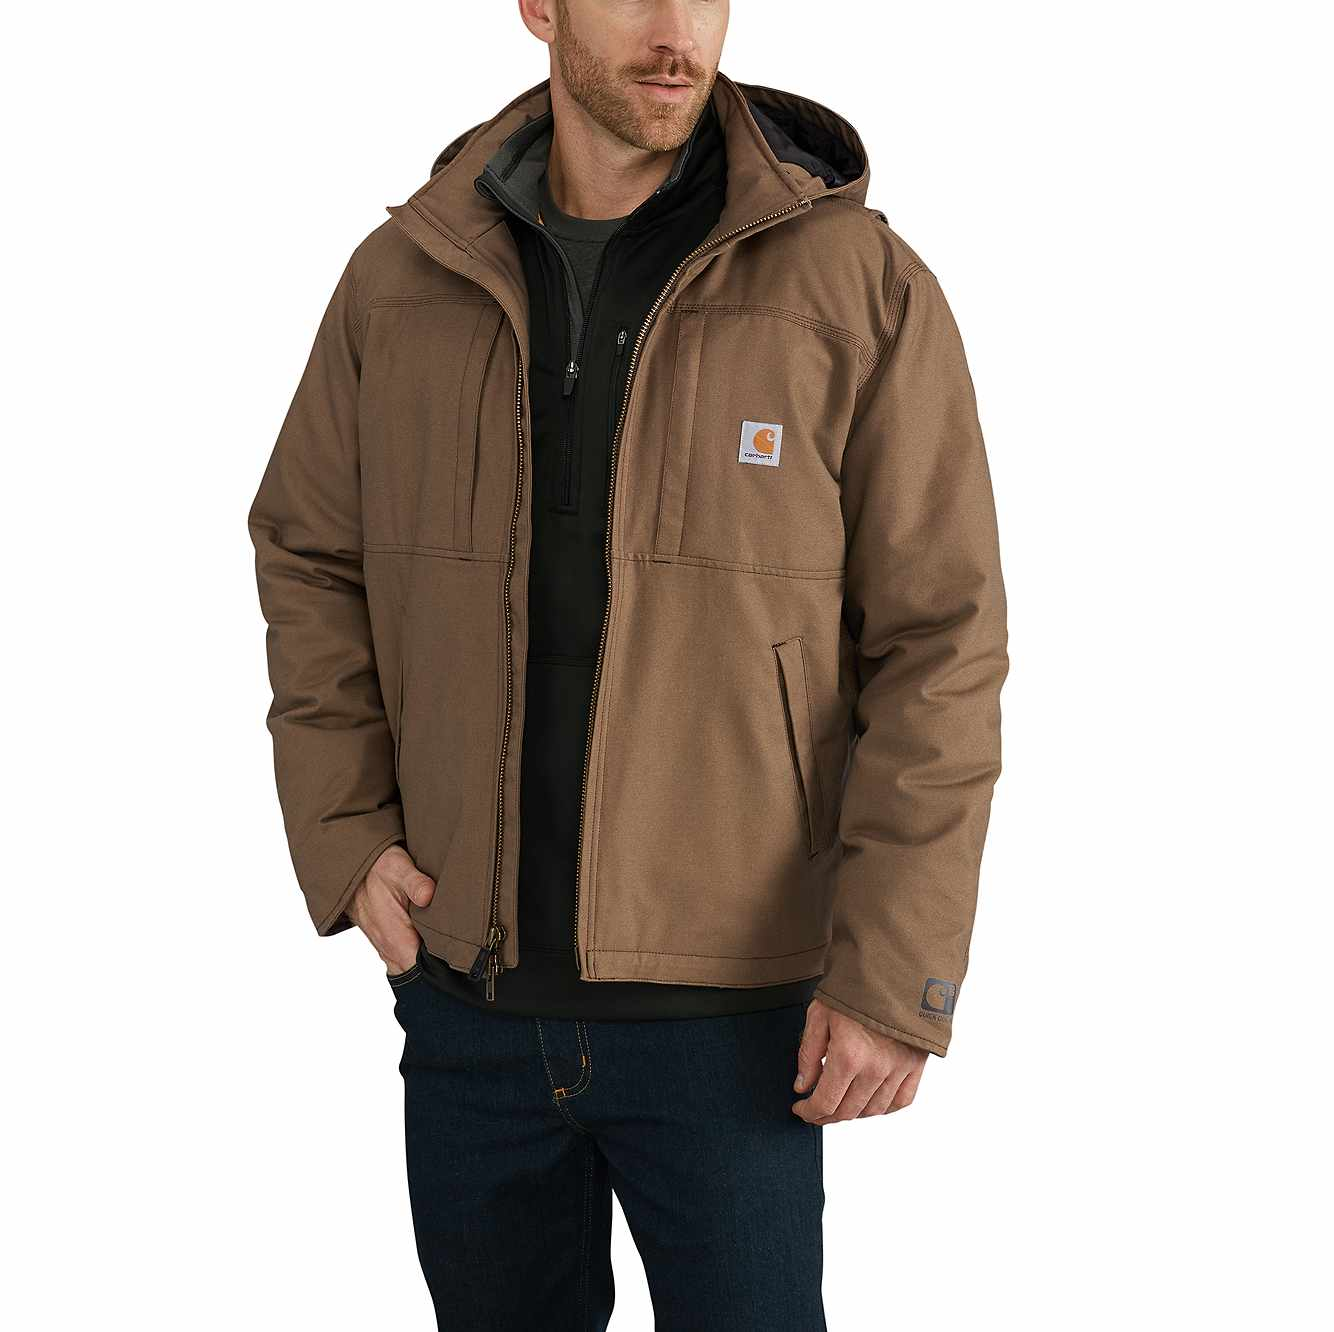 Picture of Full Swing® Cryder Jacket in Canyon Brown